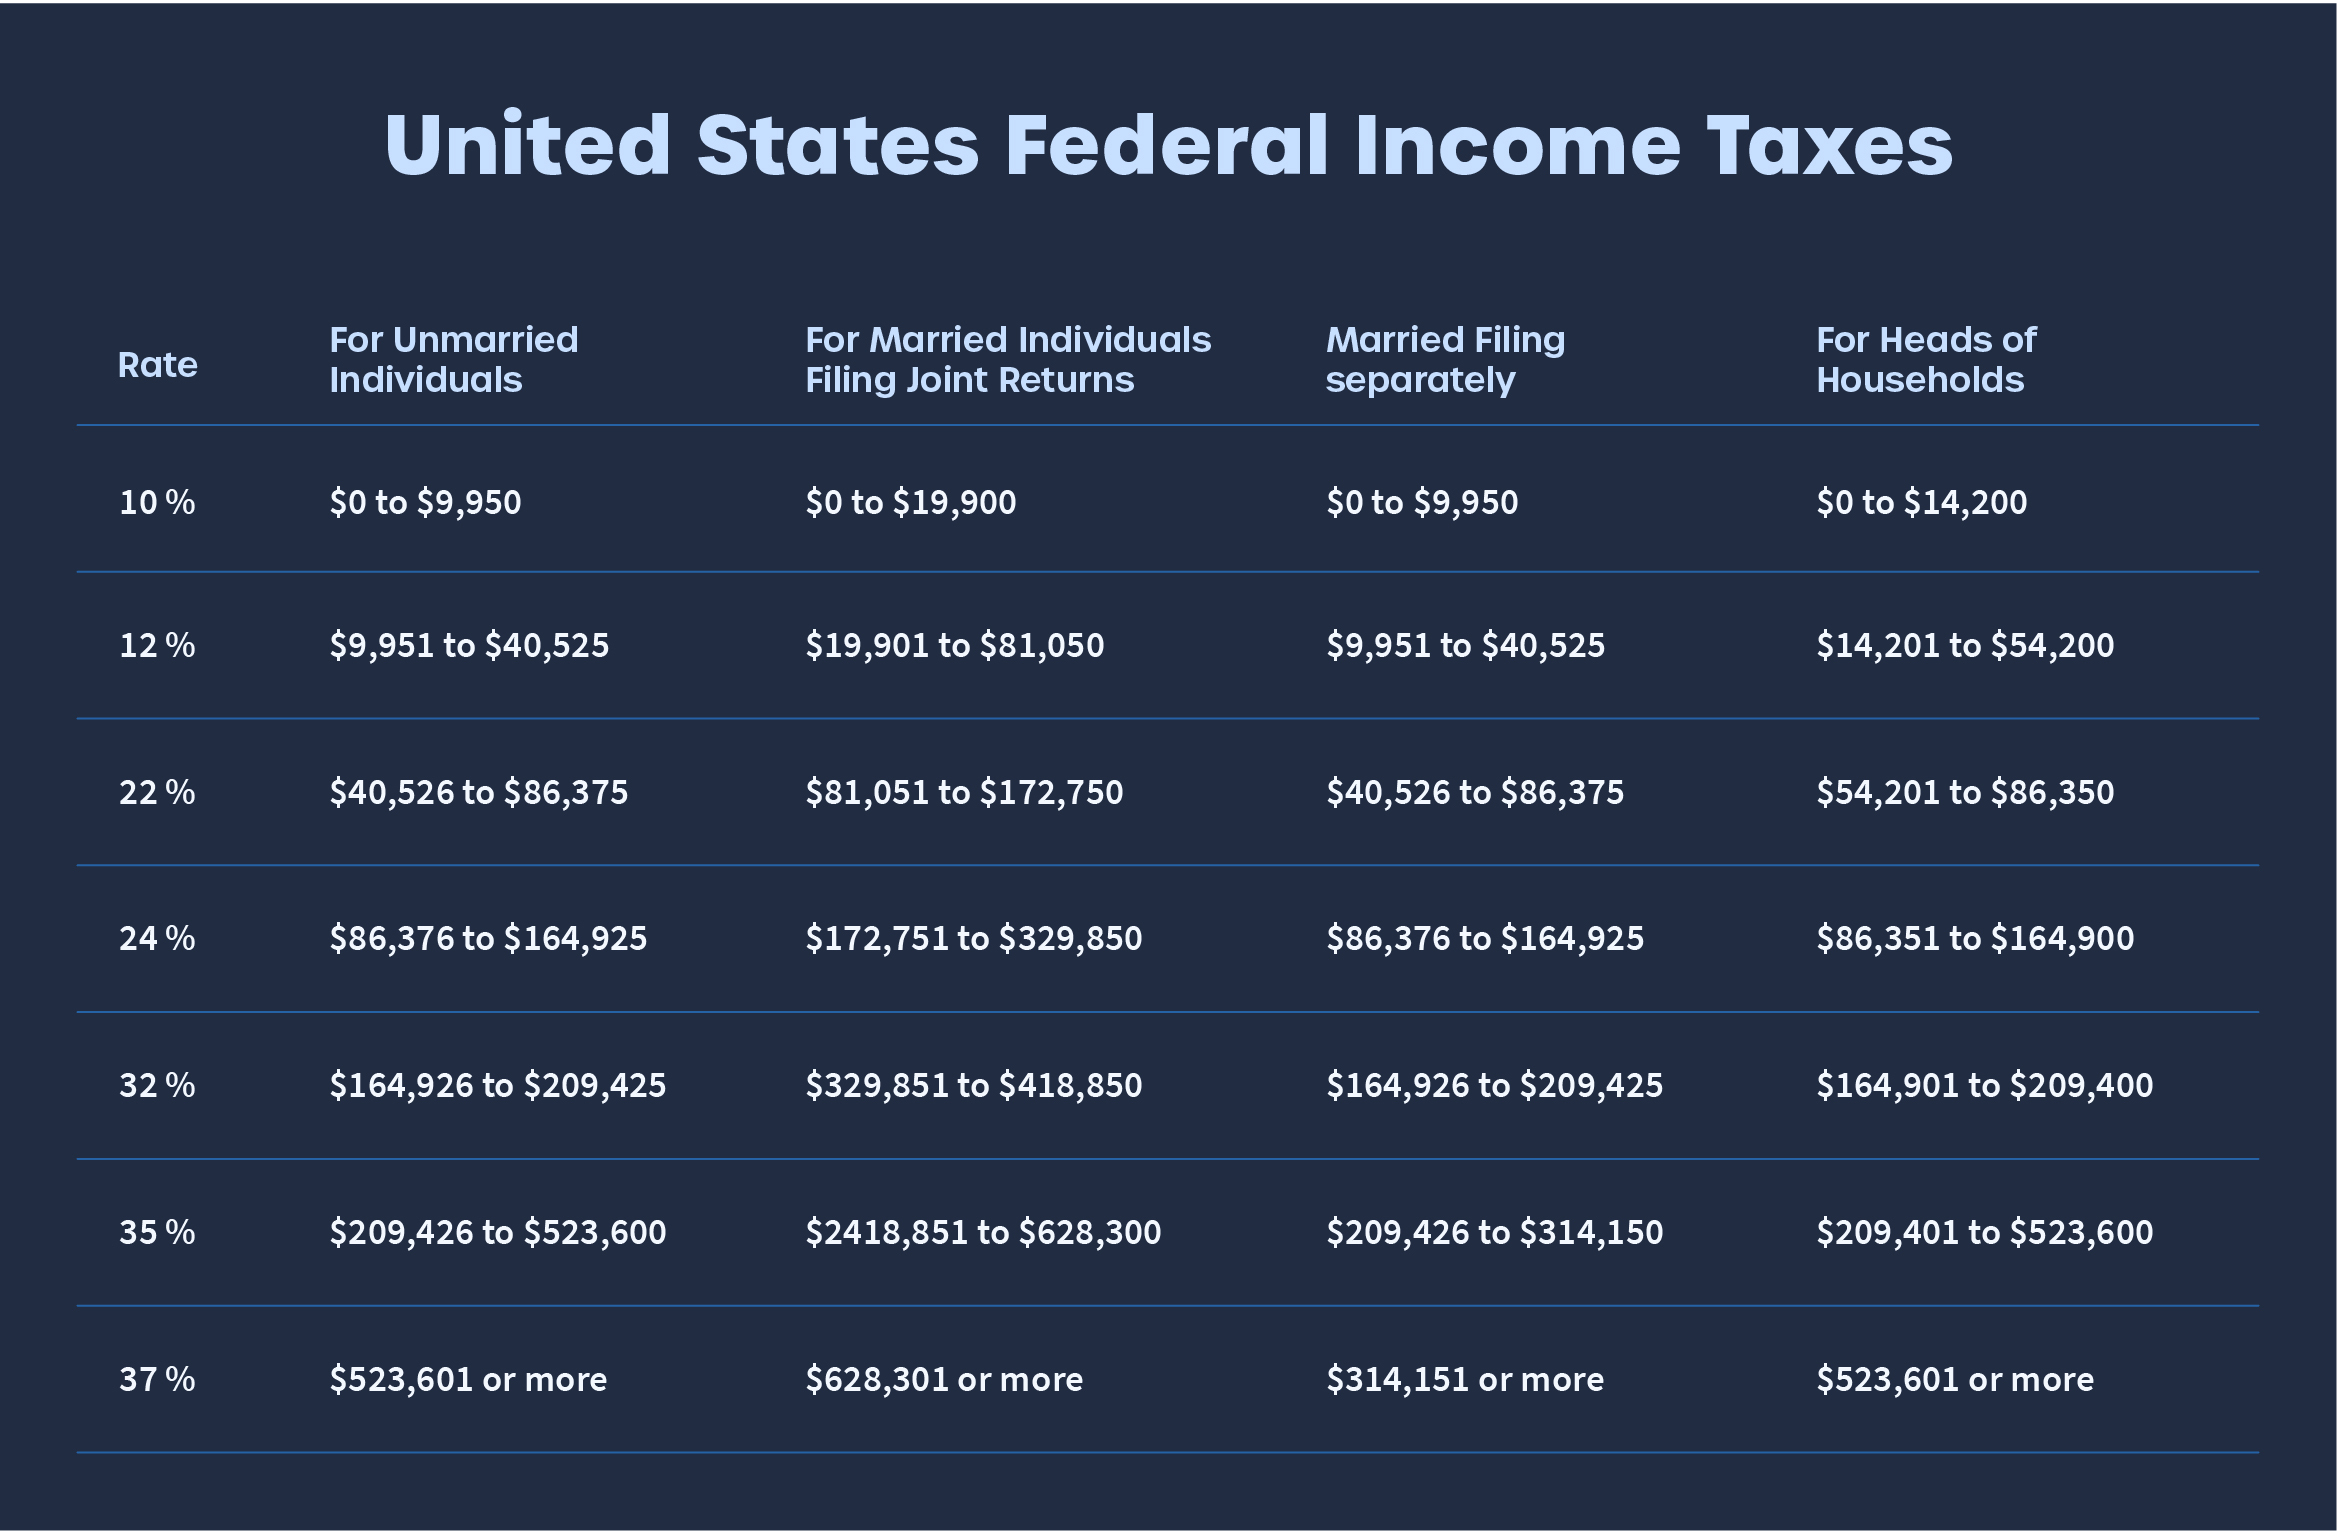 United States Federal Income Tax Brackets